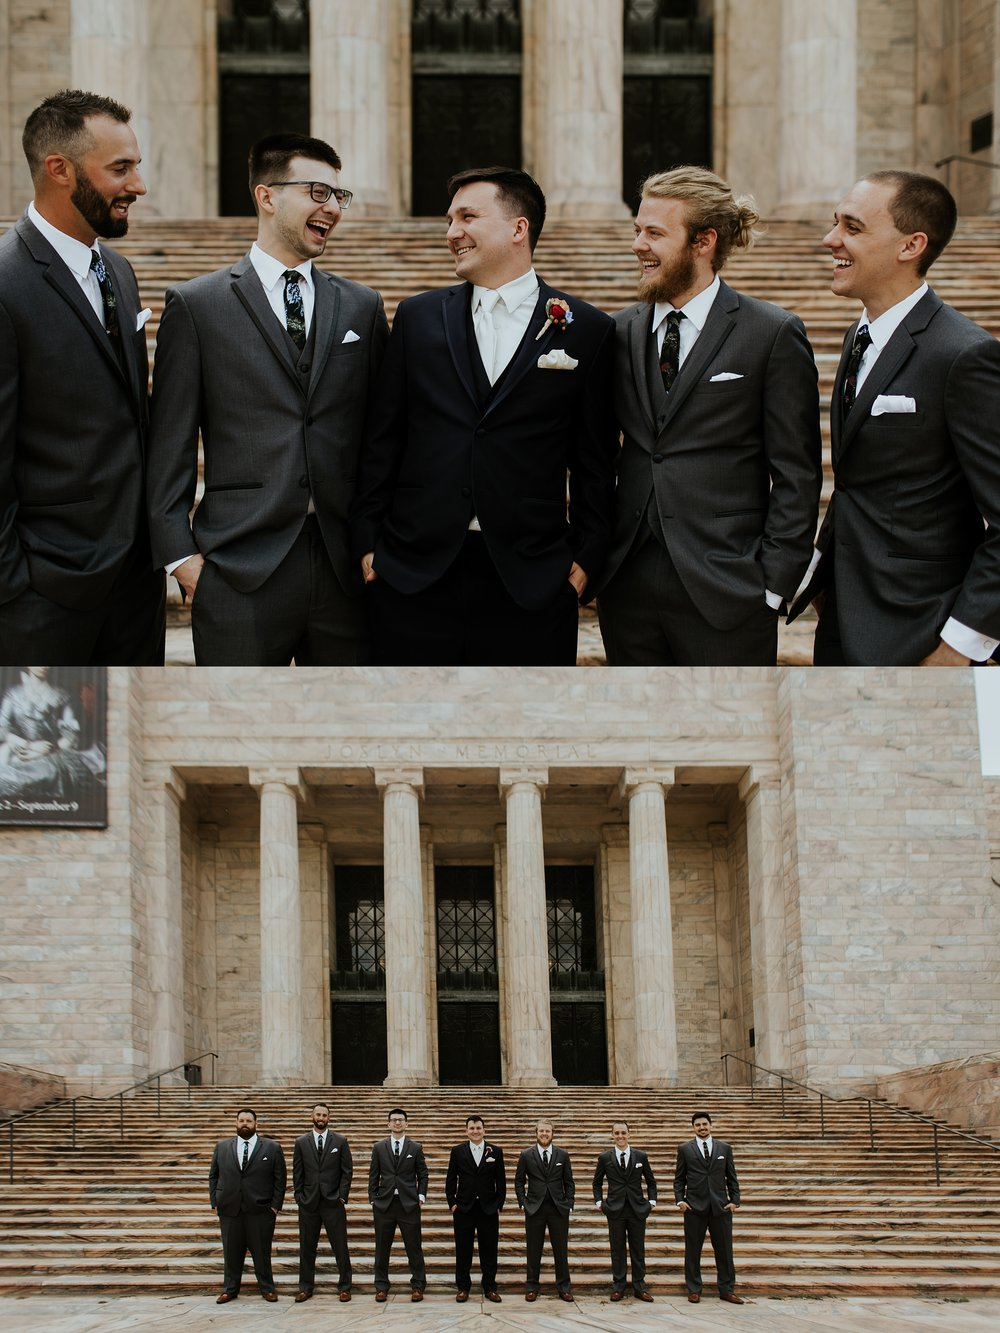 Whimsical Joslyn Art Museum Wedding by Trin Jensen - Omaha Nebraska Wedding Photographer_0012.jpg